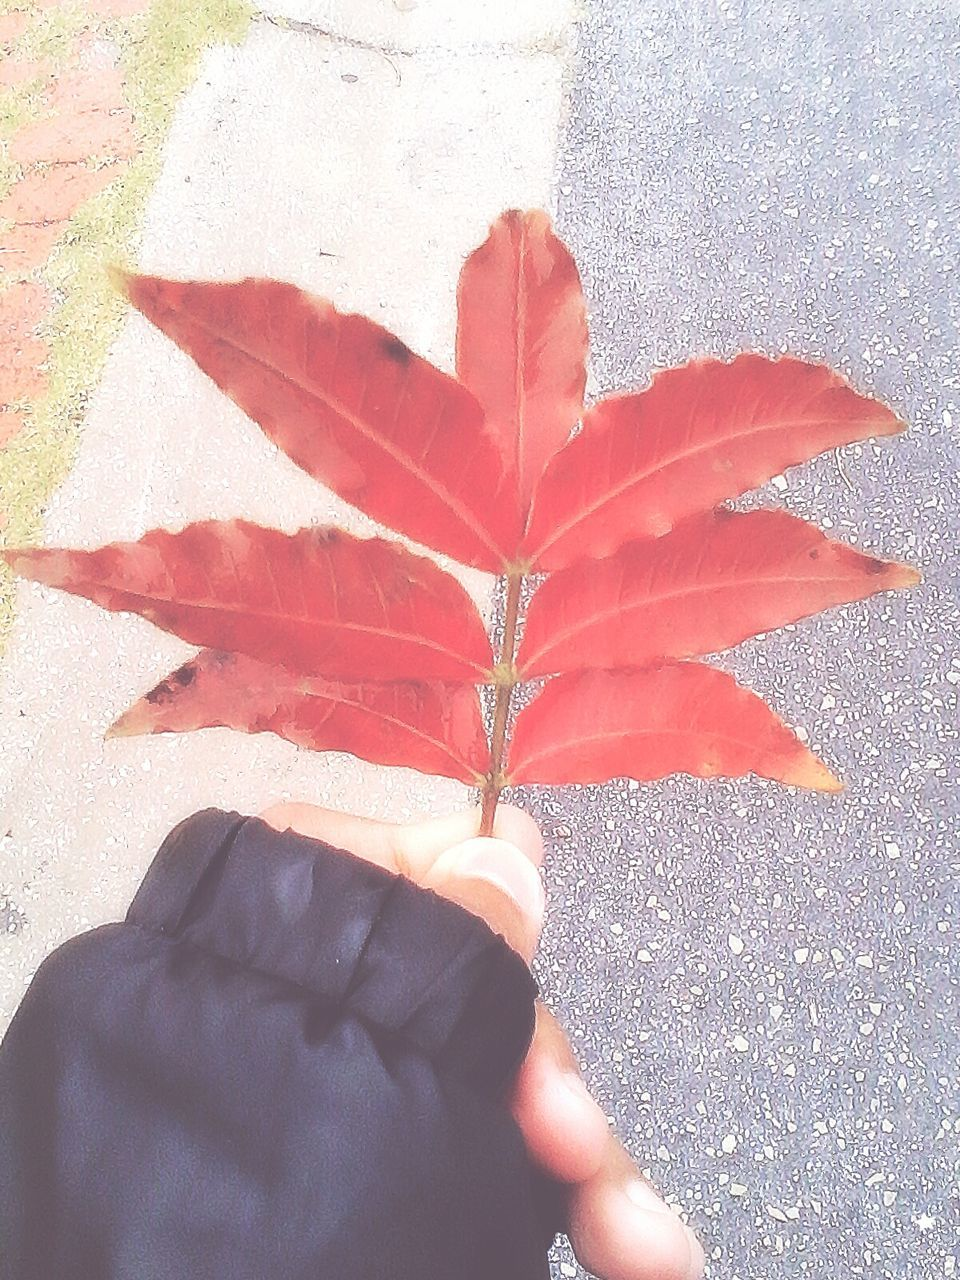 human hand, human body part, one person, real people, human finger, leaf, holding, unrecognizable person, outdoors, personal perspective, day, autumn, lifestyles, high angle view, maple leaf, close-up, nature, leisure activity, fragility, men, palm, beauty in nature, maple, flower head, people